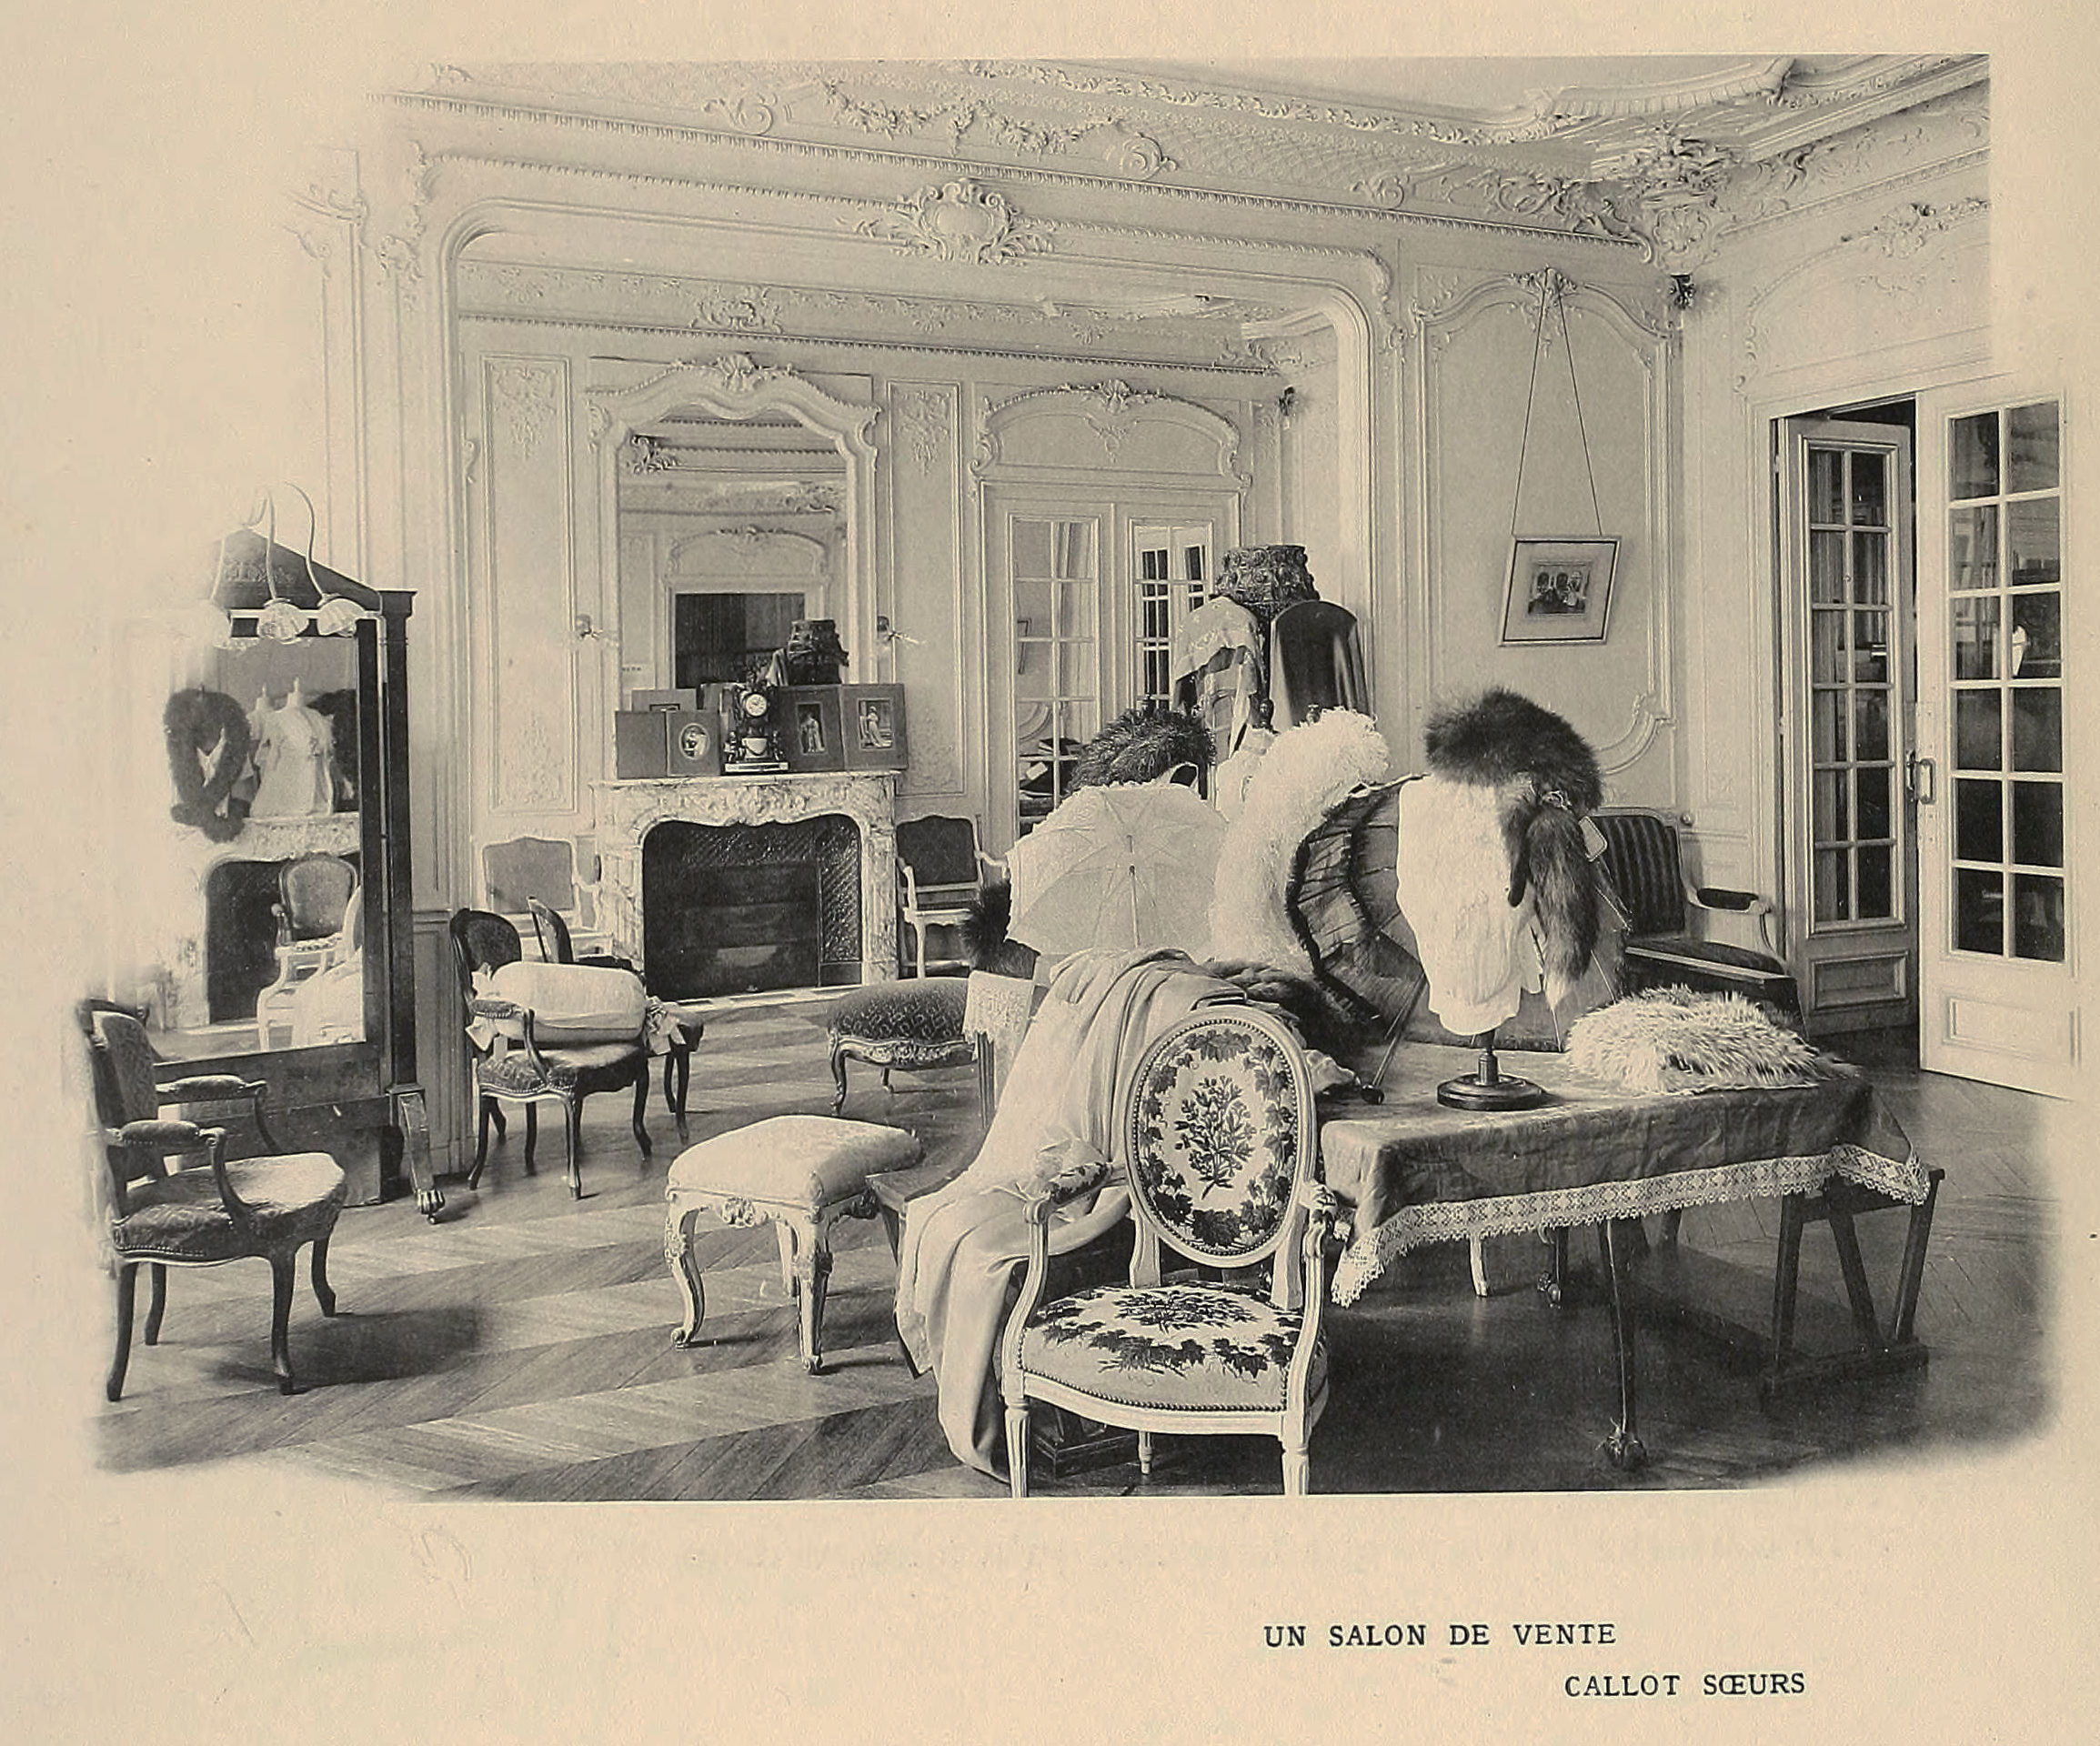 Callot soeurs fashion house salon circa 1910 for 10 best audiobooks of 2013 salon